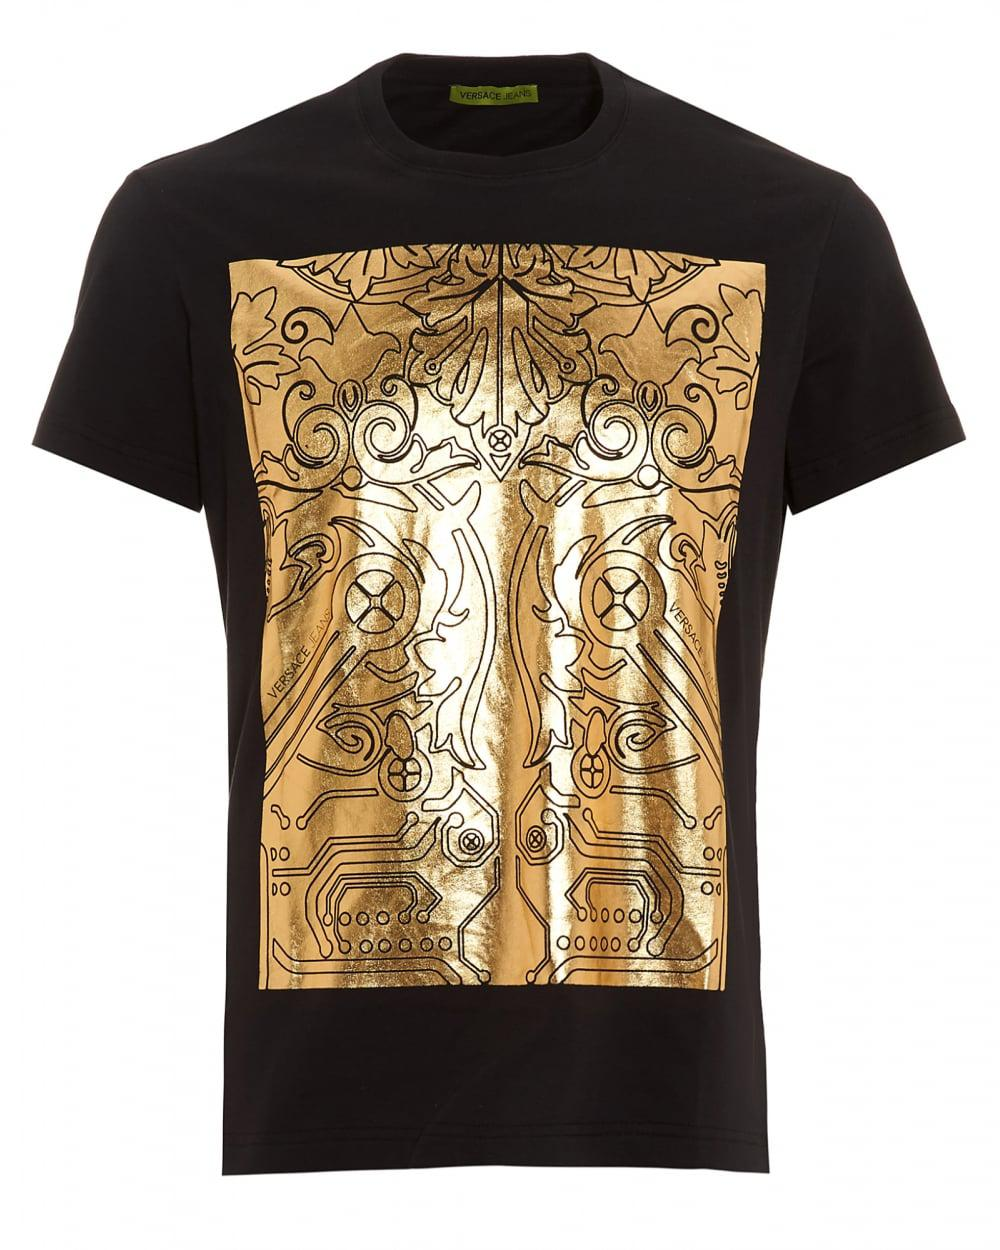 lyst versace jeans black t shirt regular fit gold foil digital baroque tee in black for men. Black Bedroom Furniture Sets. Home Design Ideas